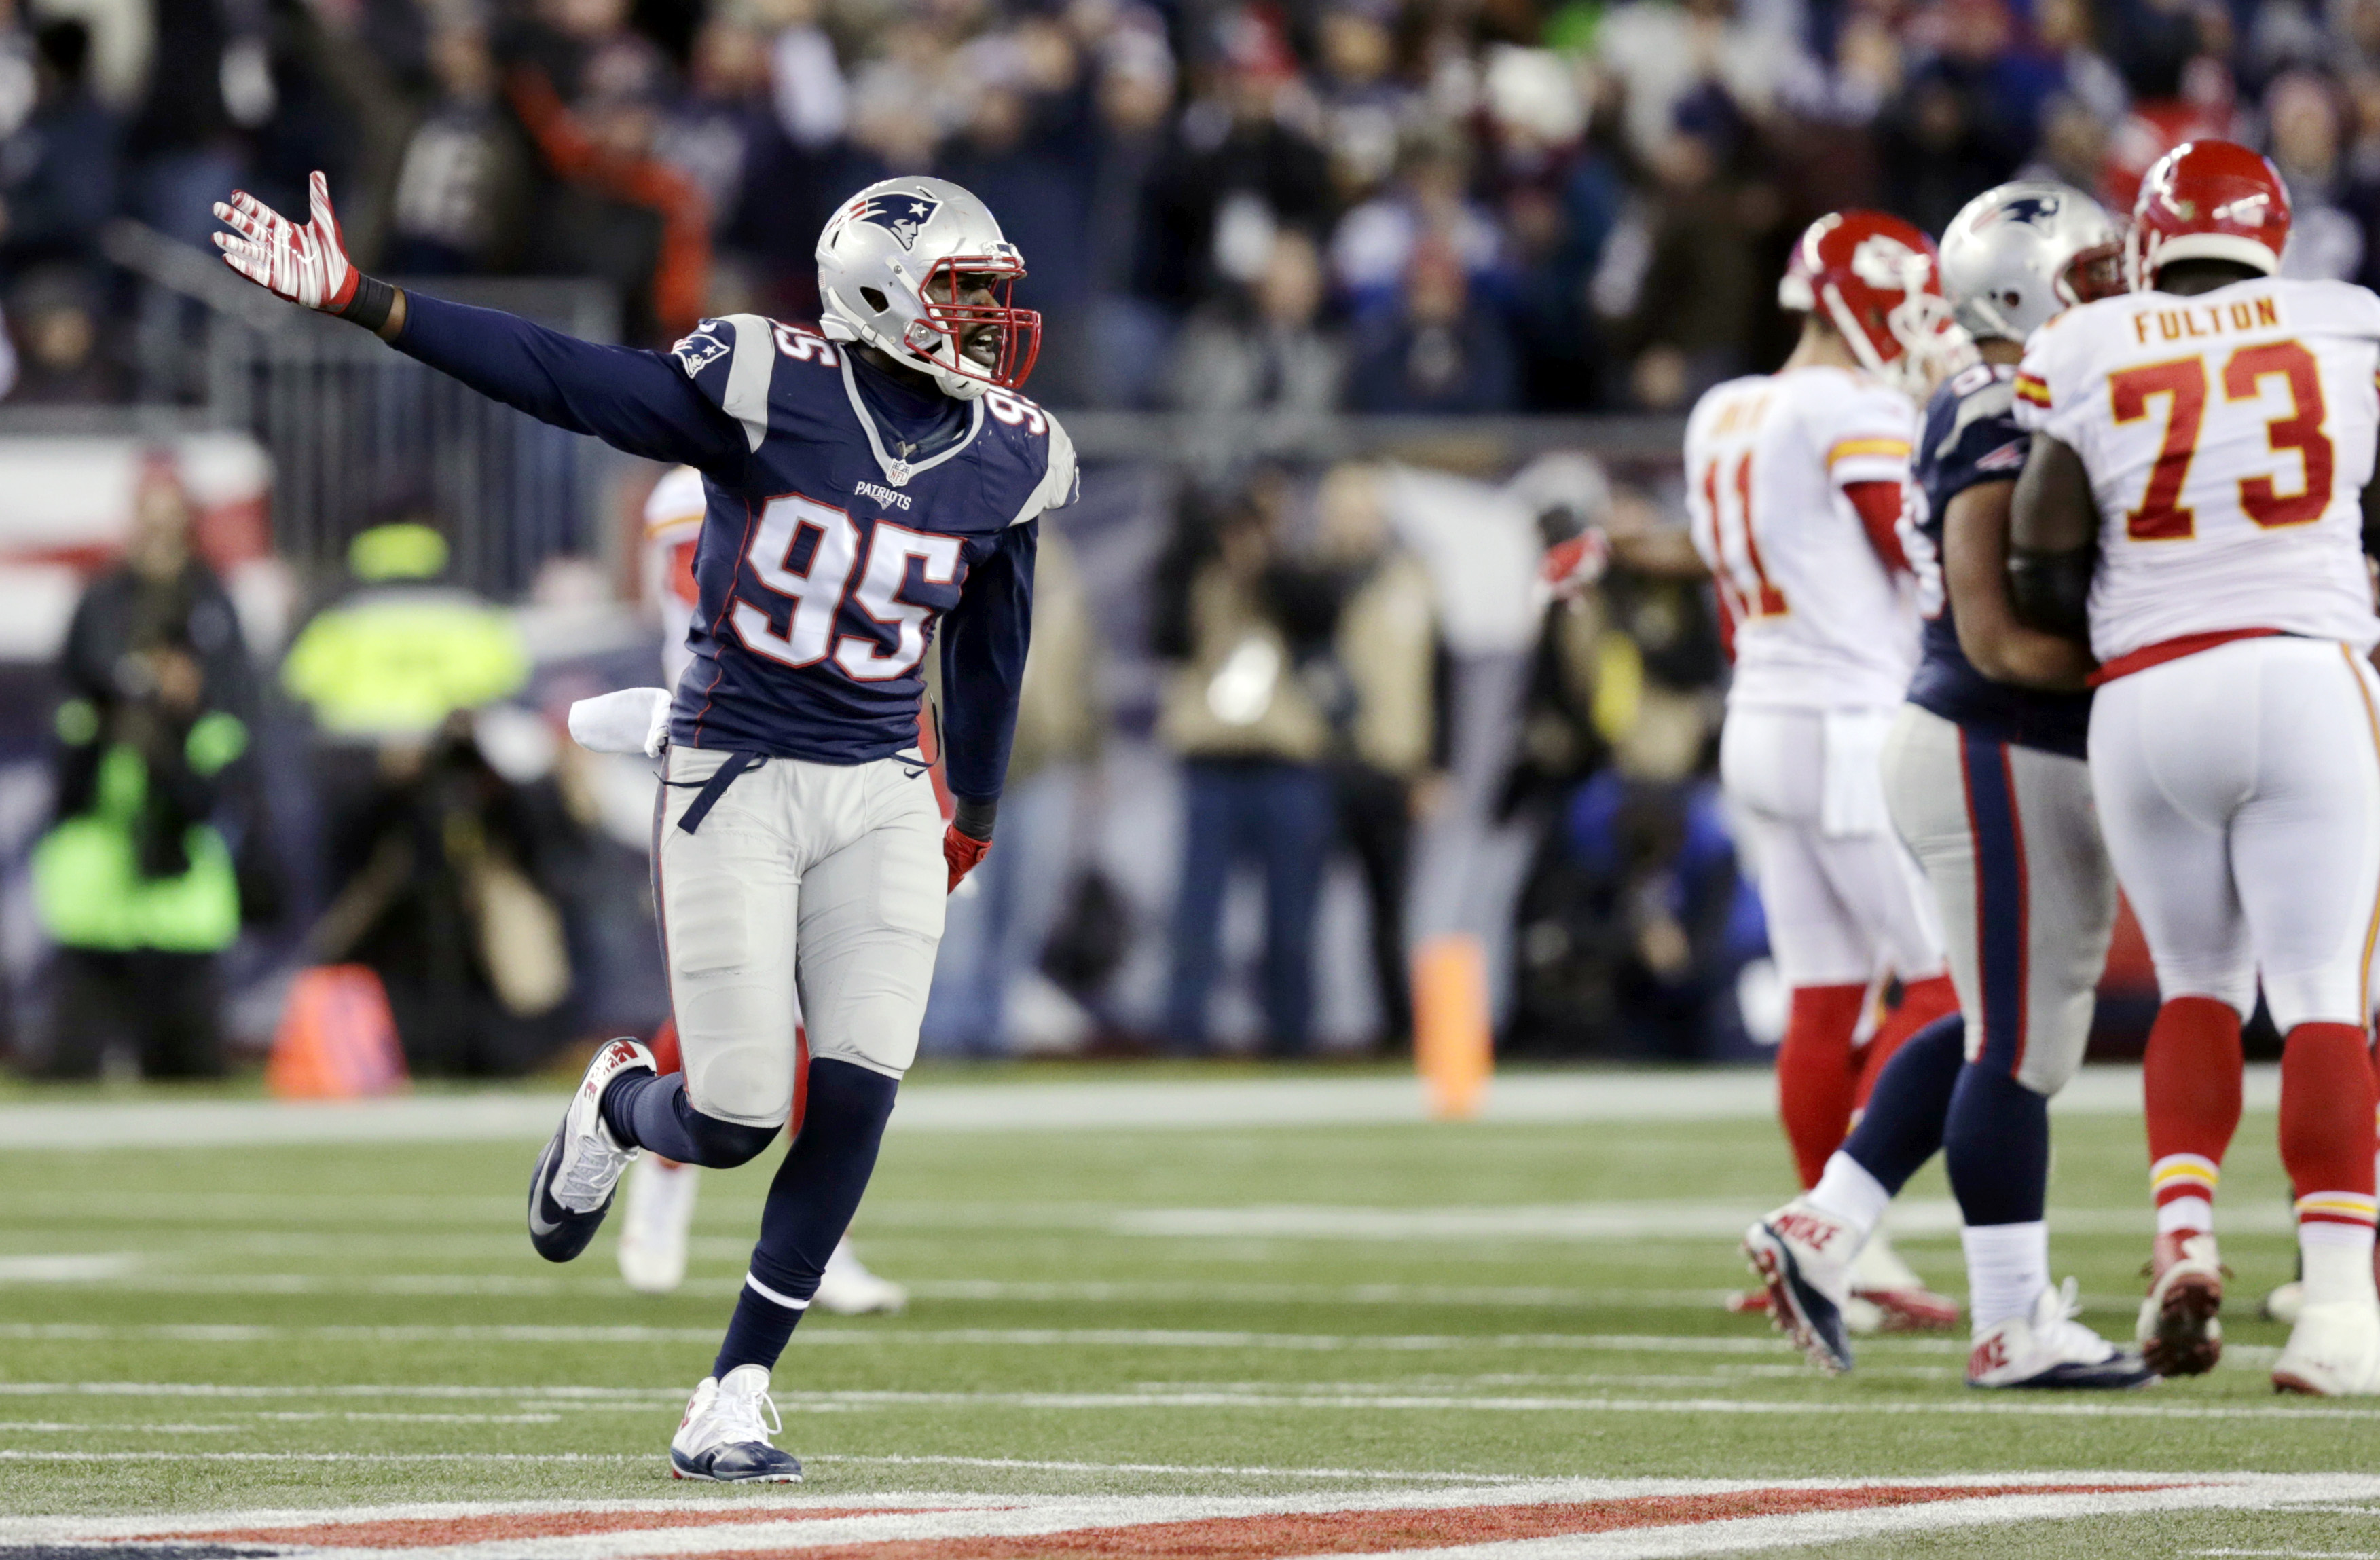 New England Patriots defensive end Chandler Jones (95) celebrates after his team recovered a fumble by the Kansas City Chiefs in the second half of an NFL divisional playoff football game, Saturday, Jan. 16, 2016, in Foxborough, Mass. (AP Photo/Charles Kr